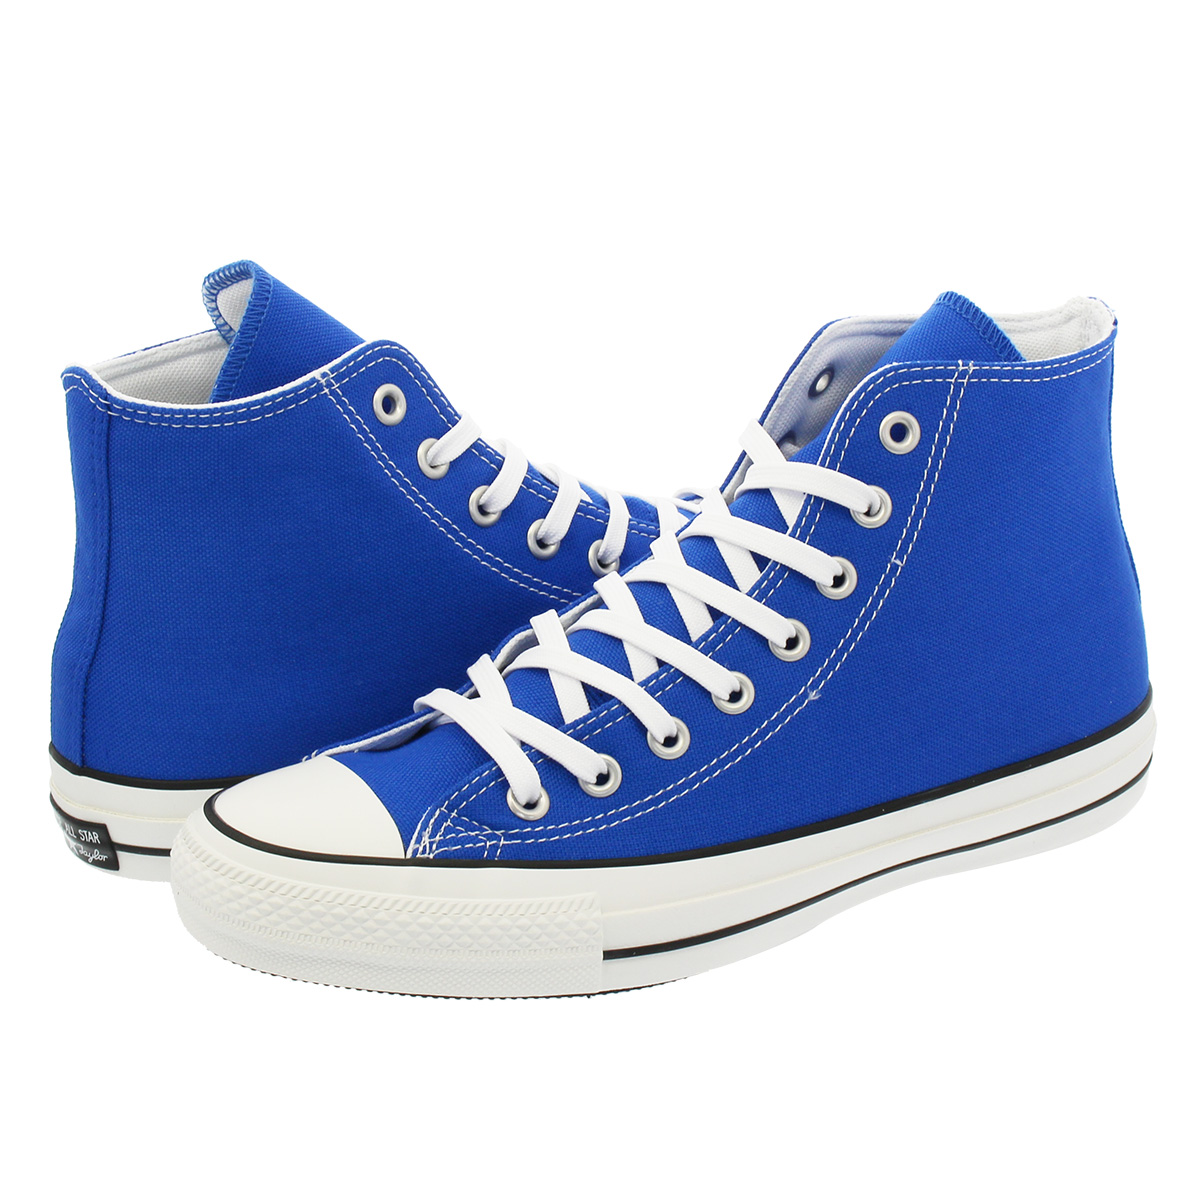 SELECT SHOP LOWTEX | Rakuten Global Market: CONVERSE ALL STAR 100 COLORS HI Converse all-stars 100 colors HI BLUE 32961926